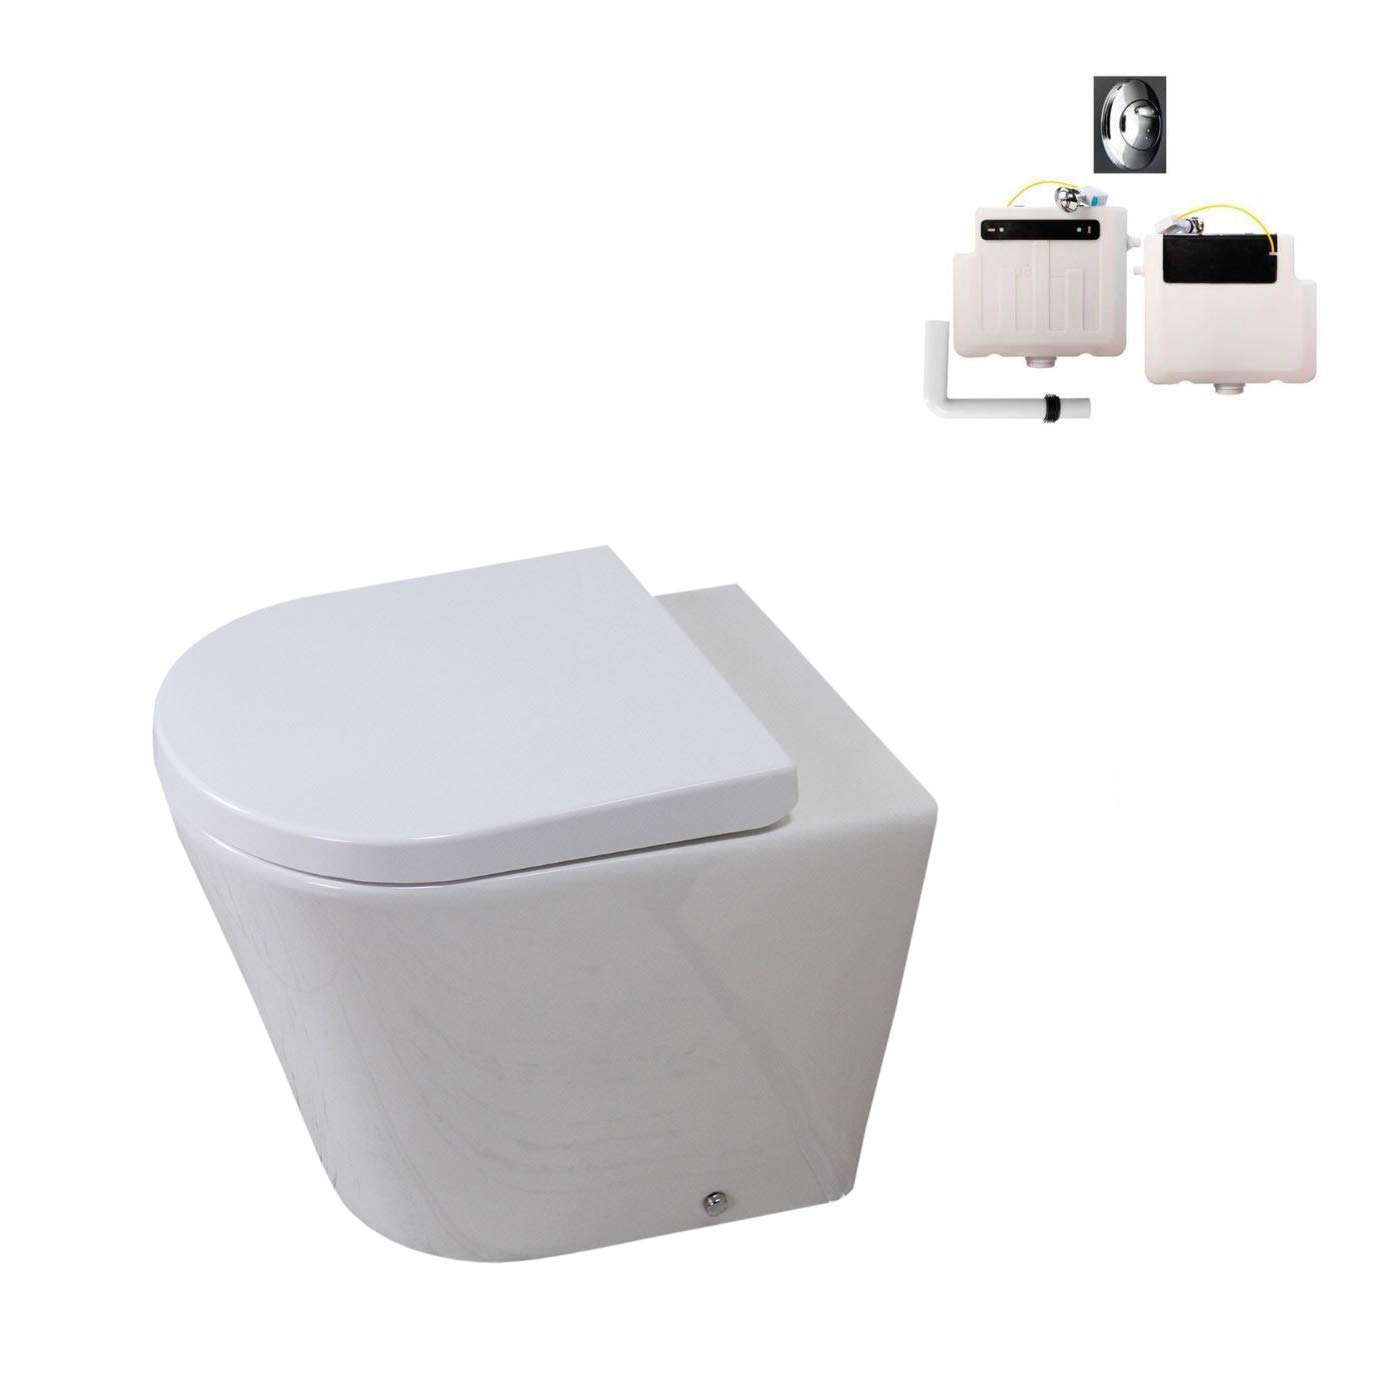 KLARA Toilet WC Bathroom Back to Wall Ceramic White Soft Closing Seat